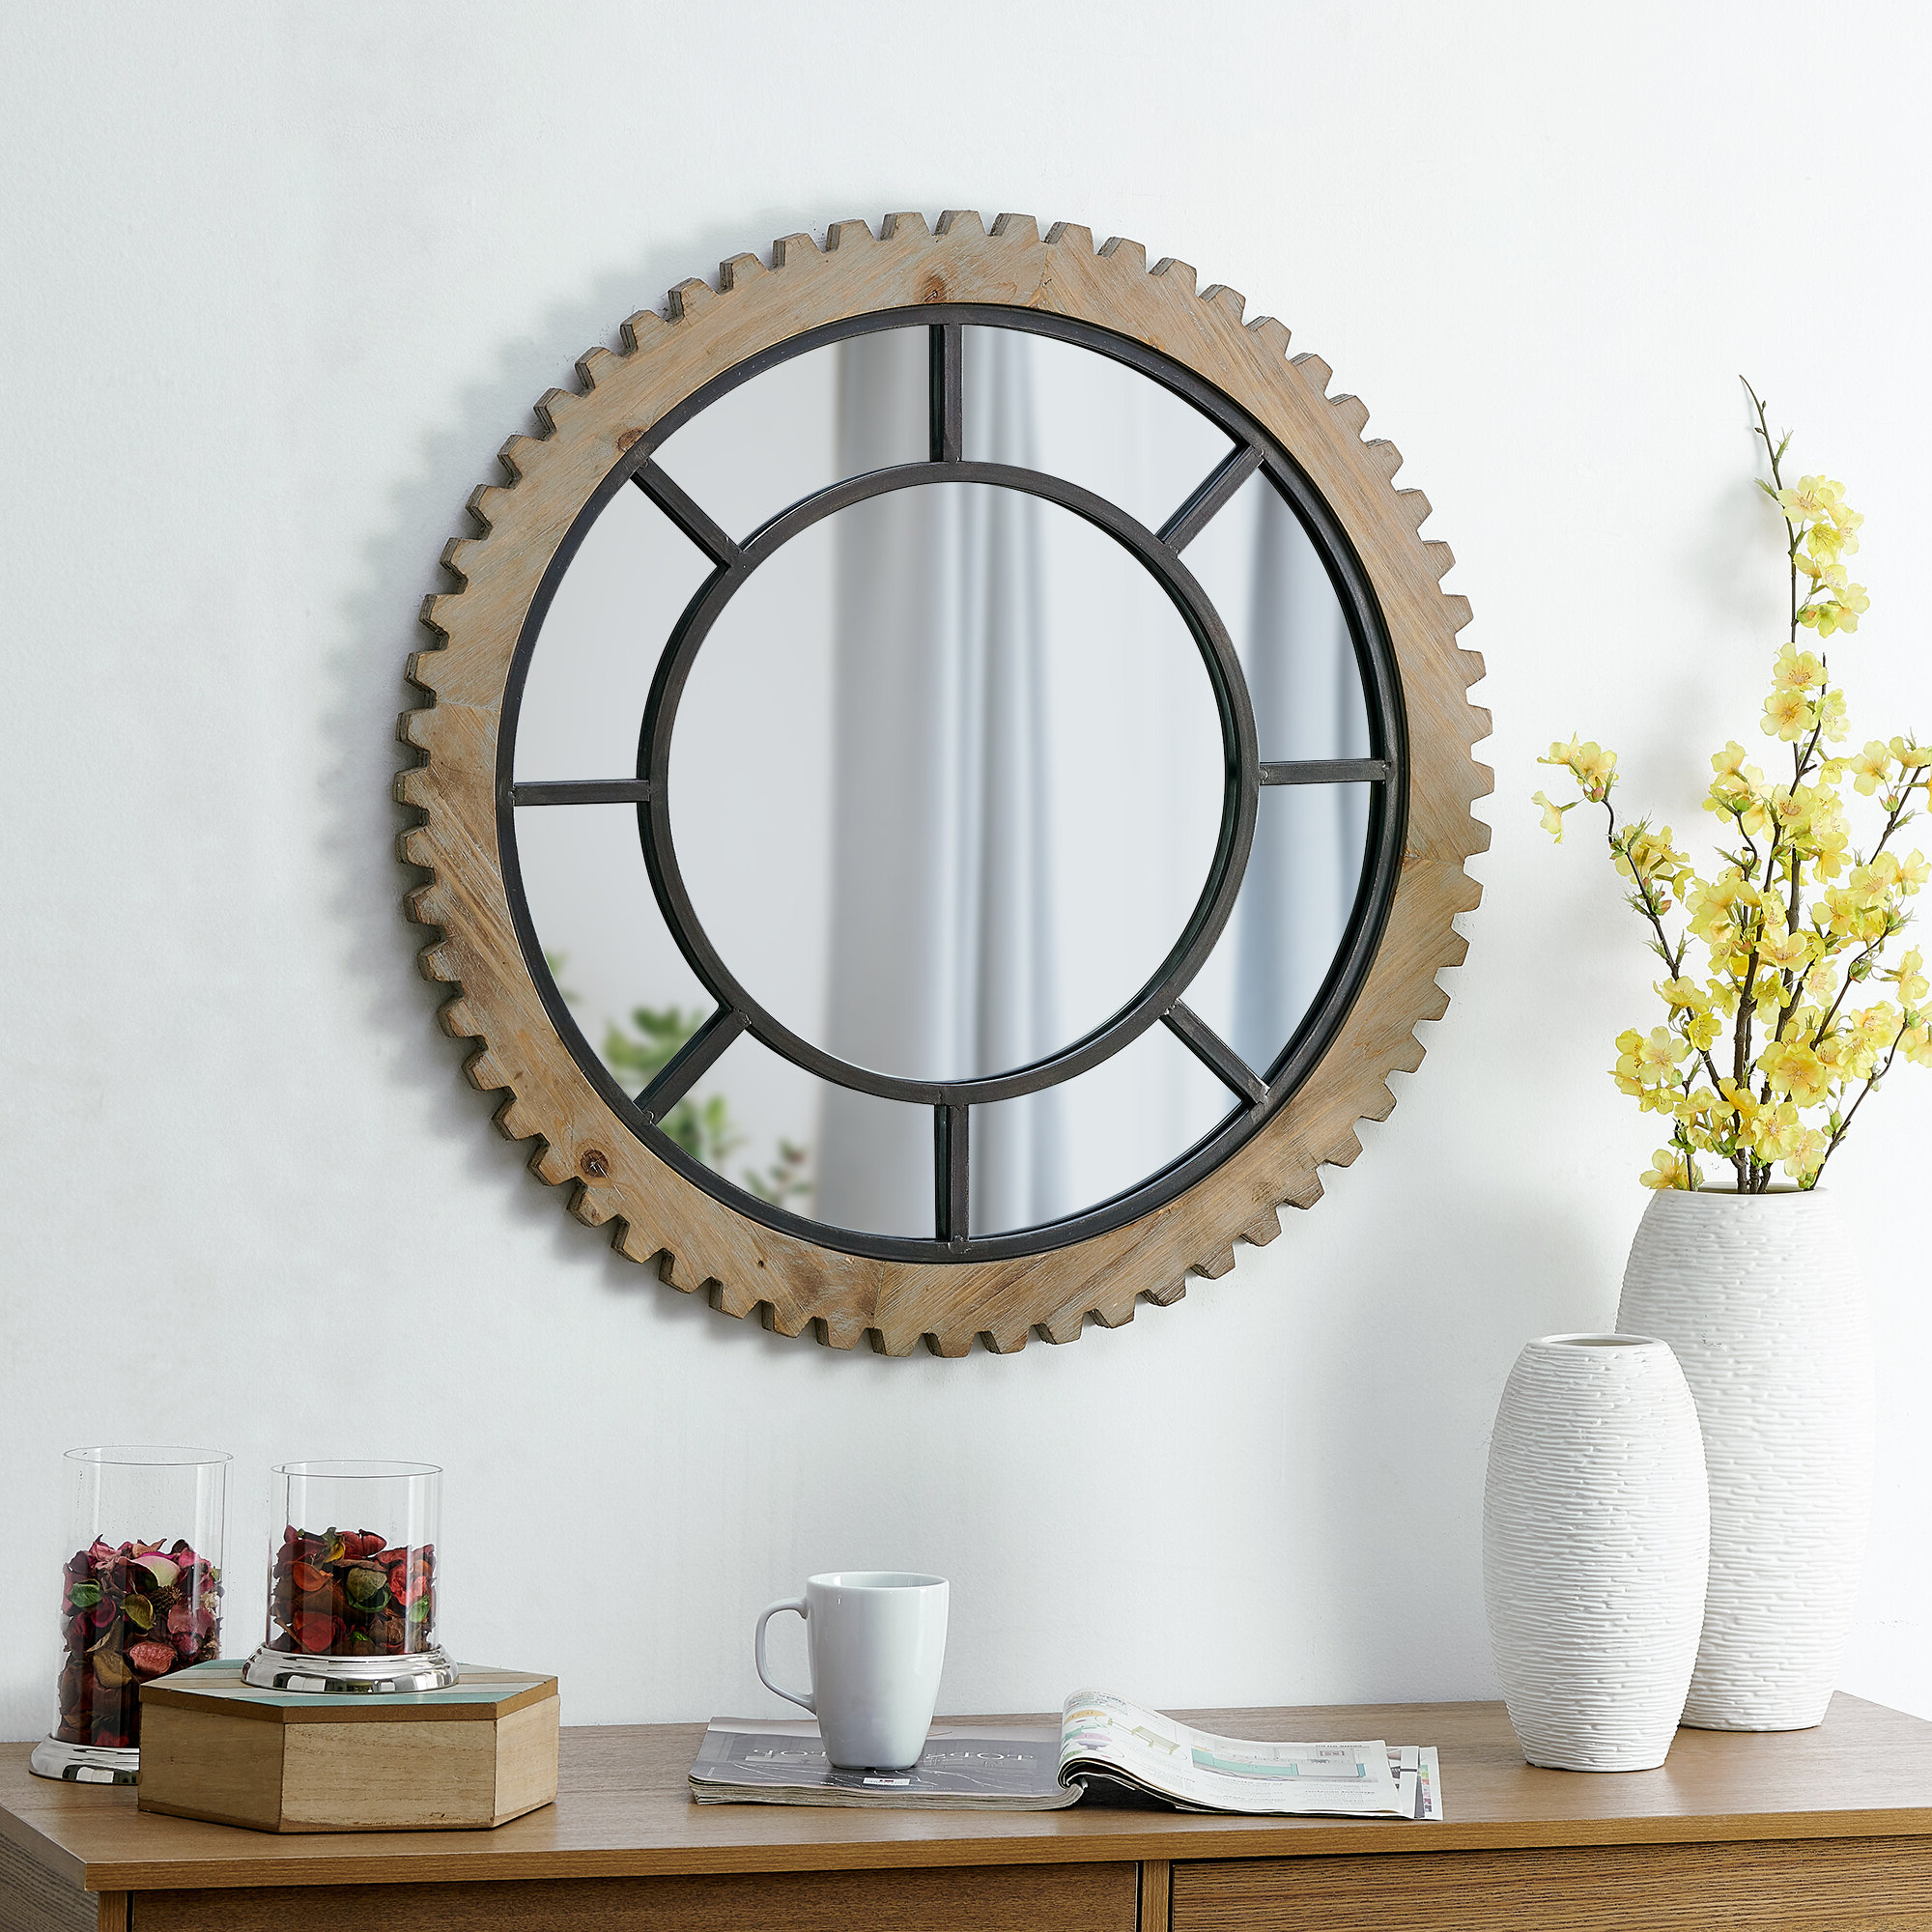 Enos Gear Mirror Industrial Accent Mirror Pertaining To Best And Newest Ogier Accent Mirrors (View 10 of 20)